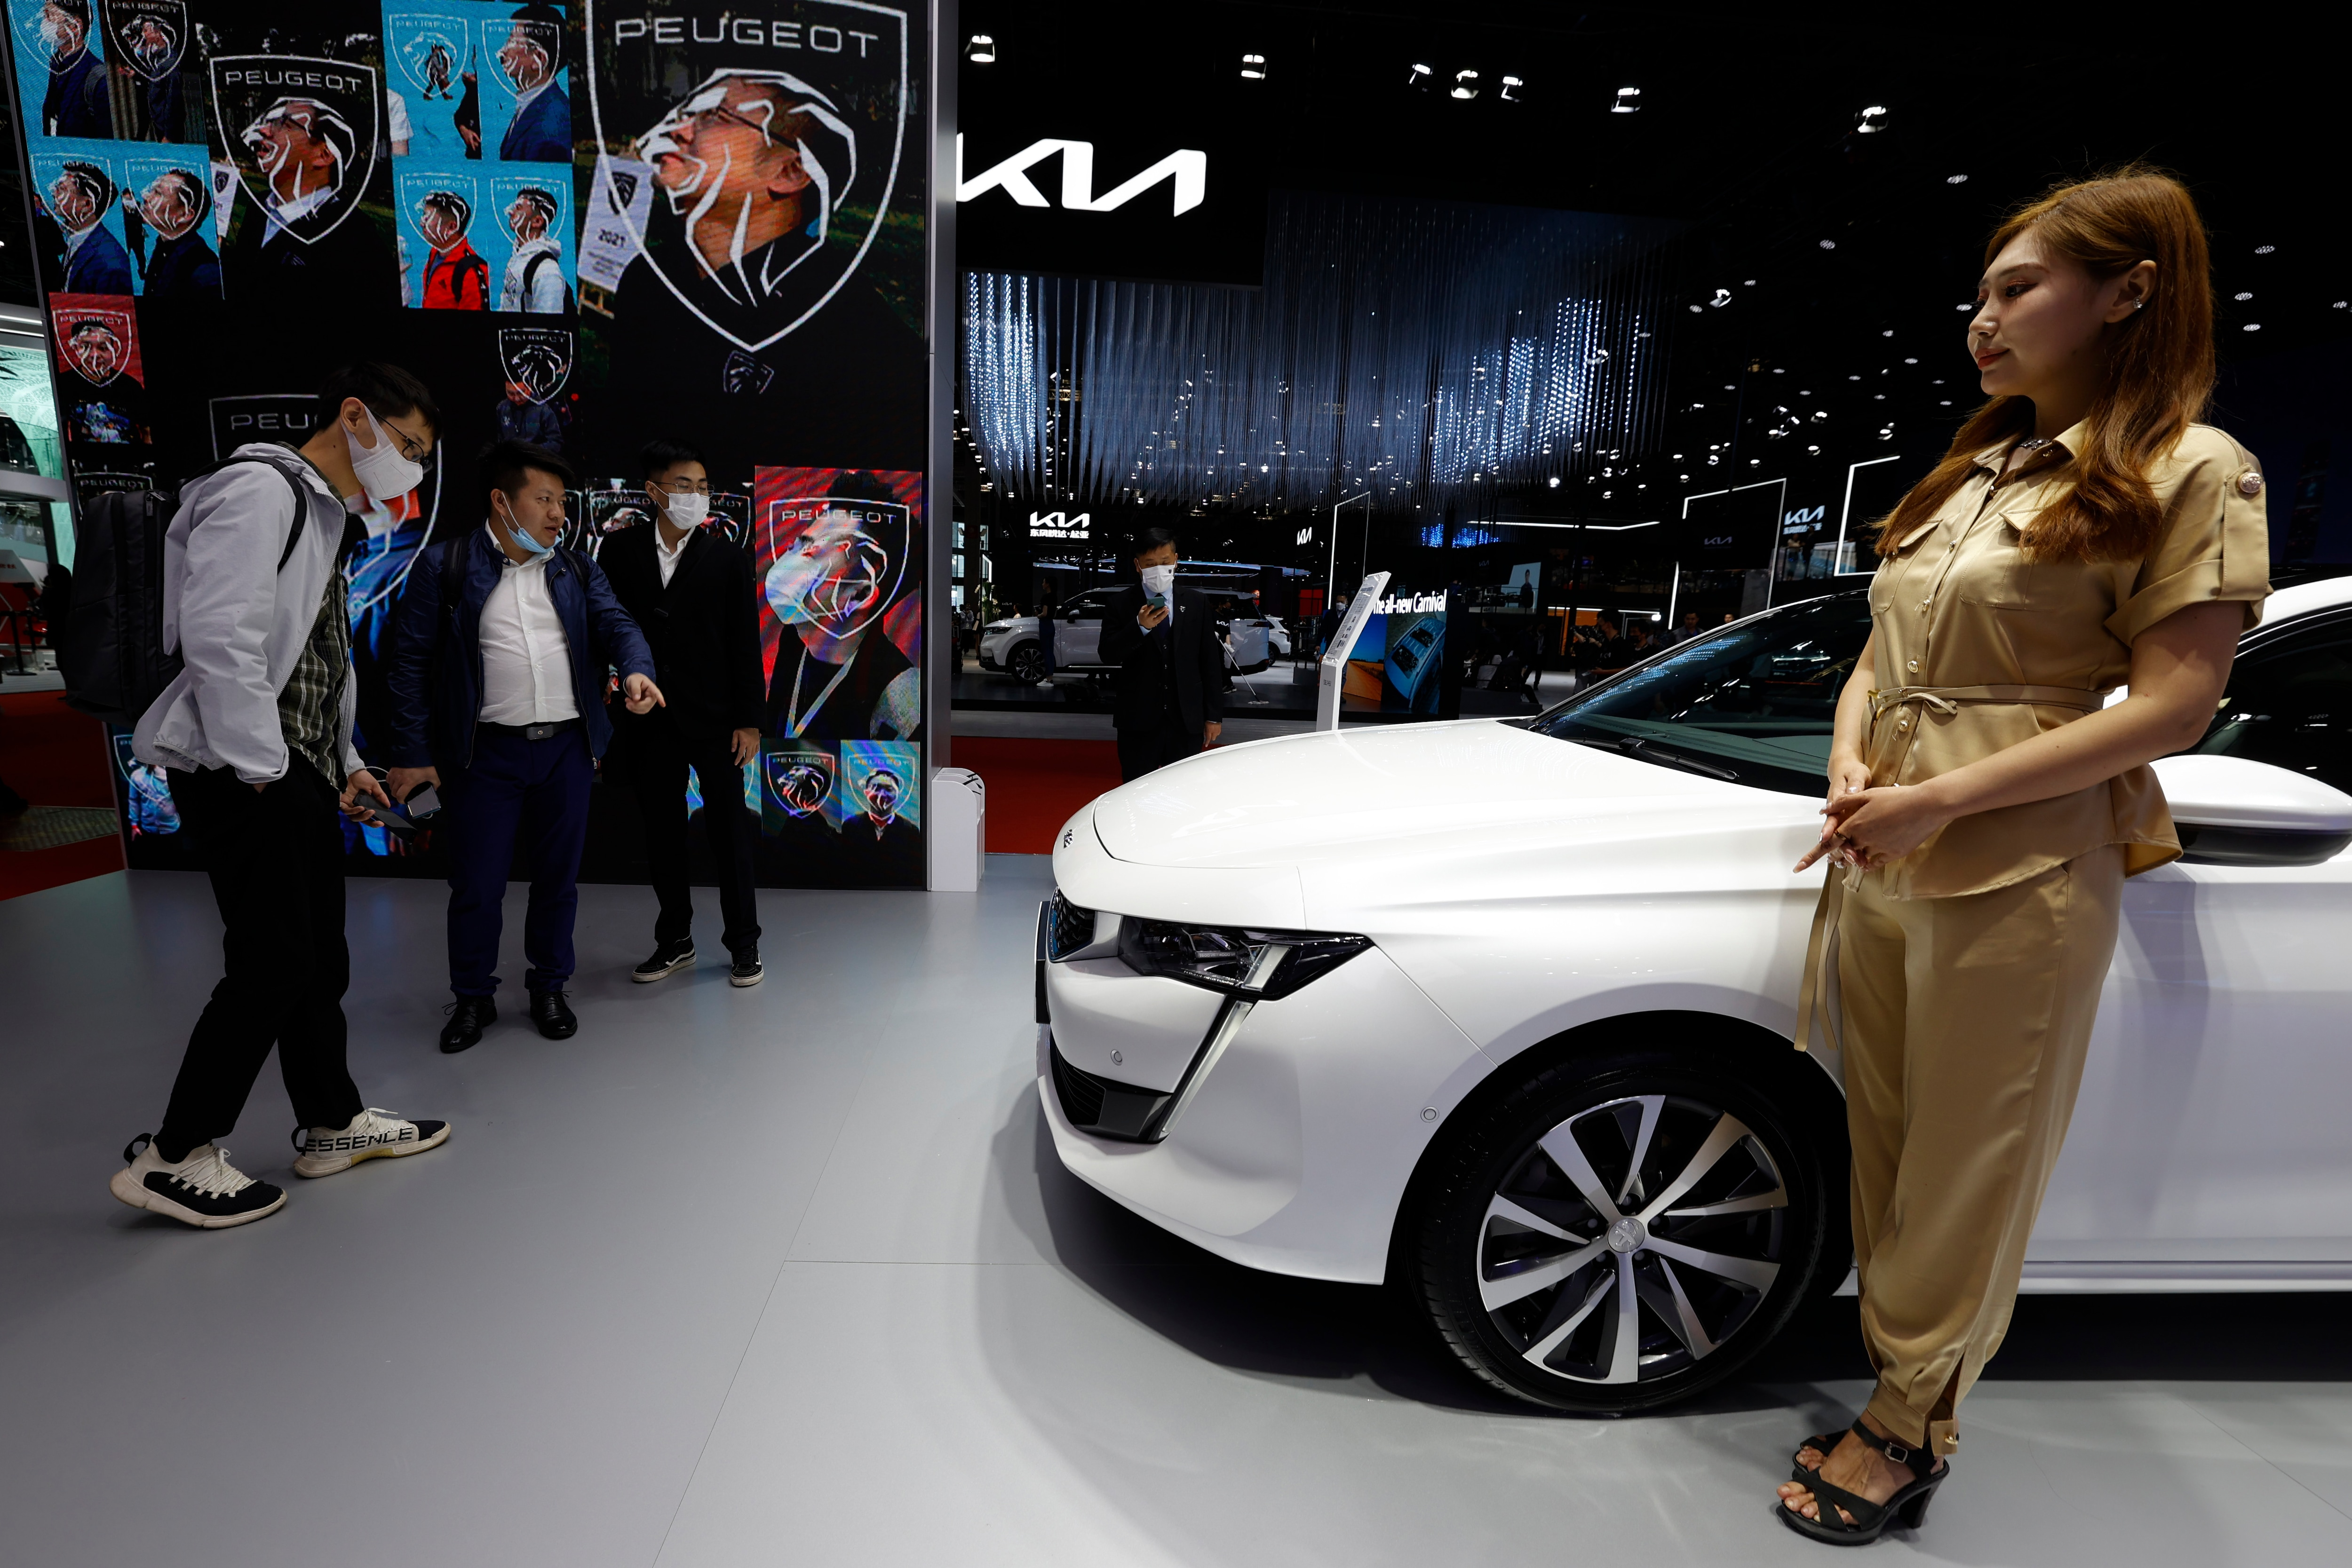 Visitors look at the latest cars on display at the Peugeot booth while a promoter stands next to a vehicle. (AP)